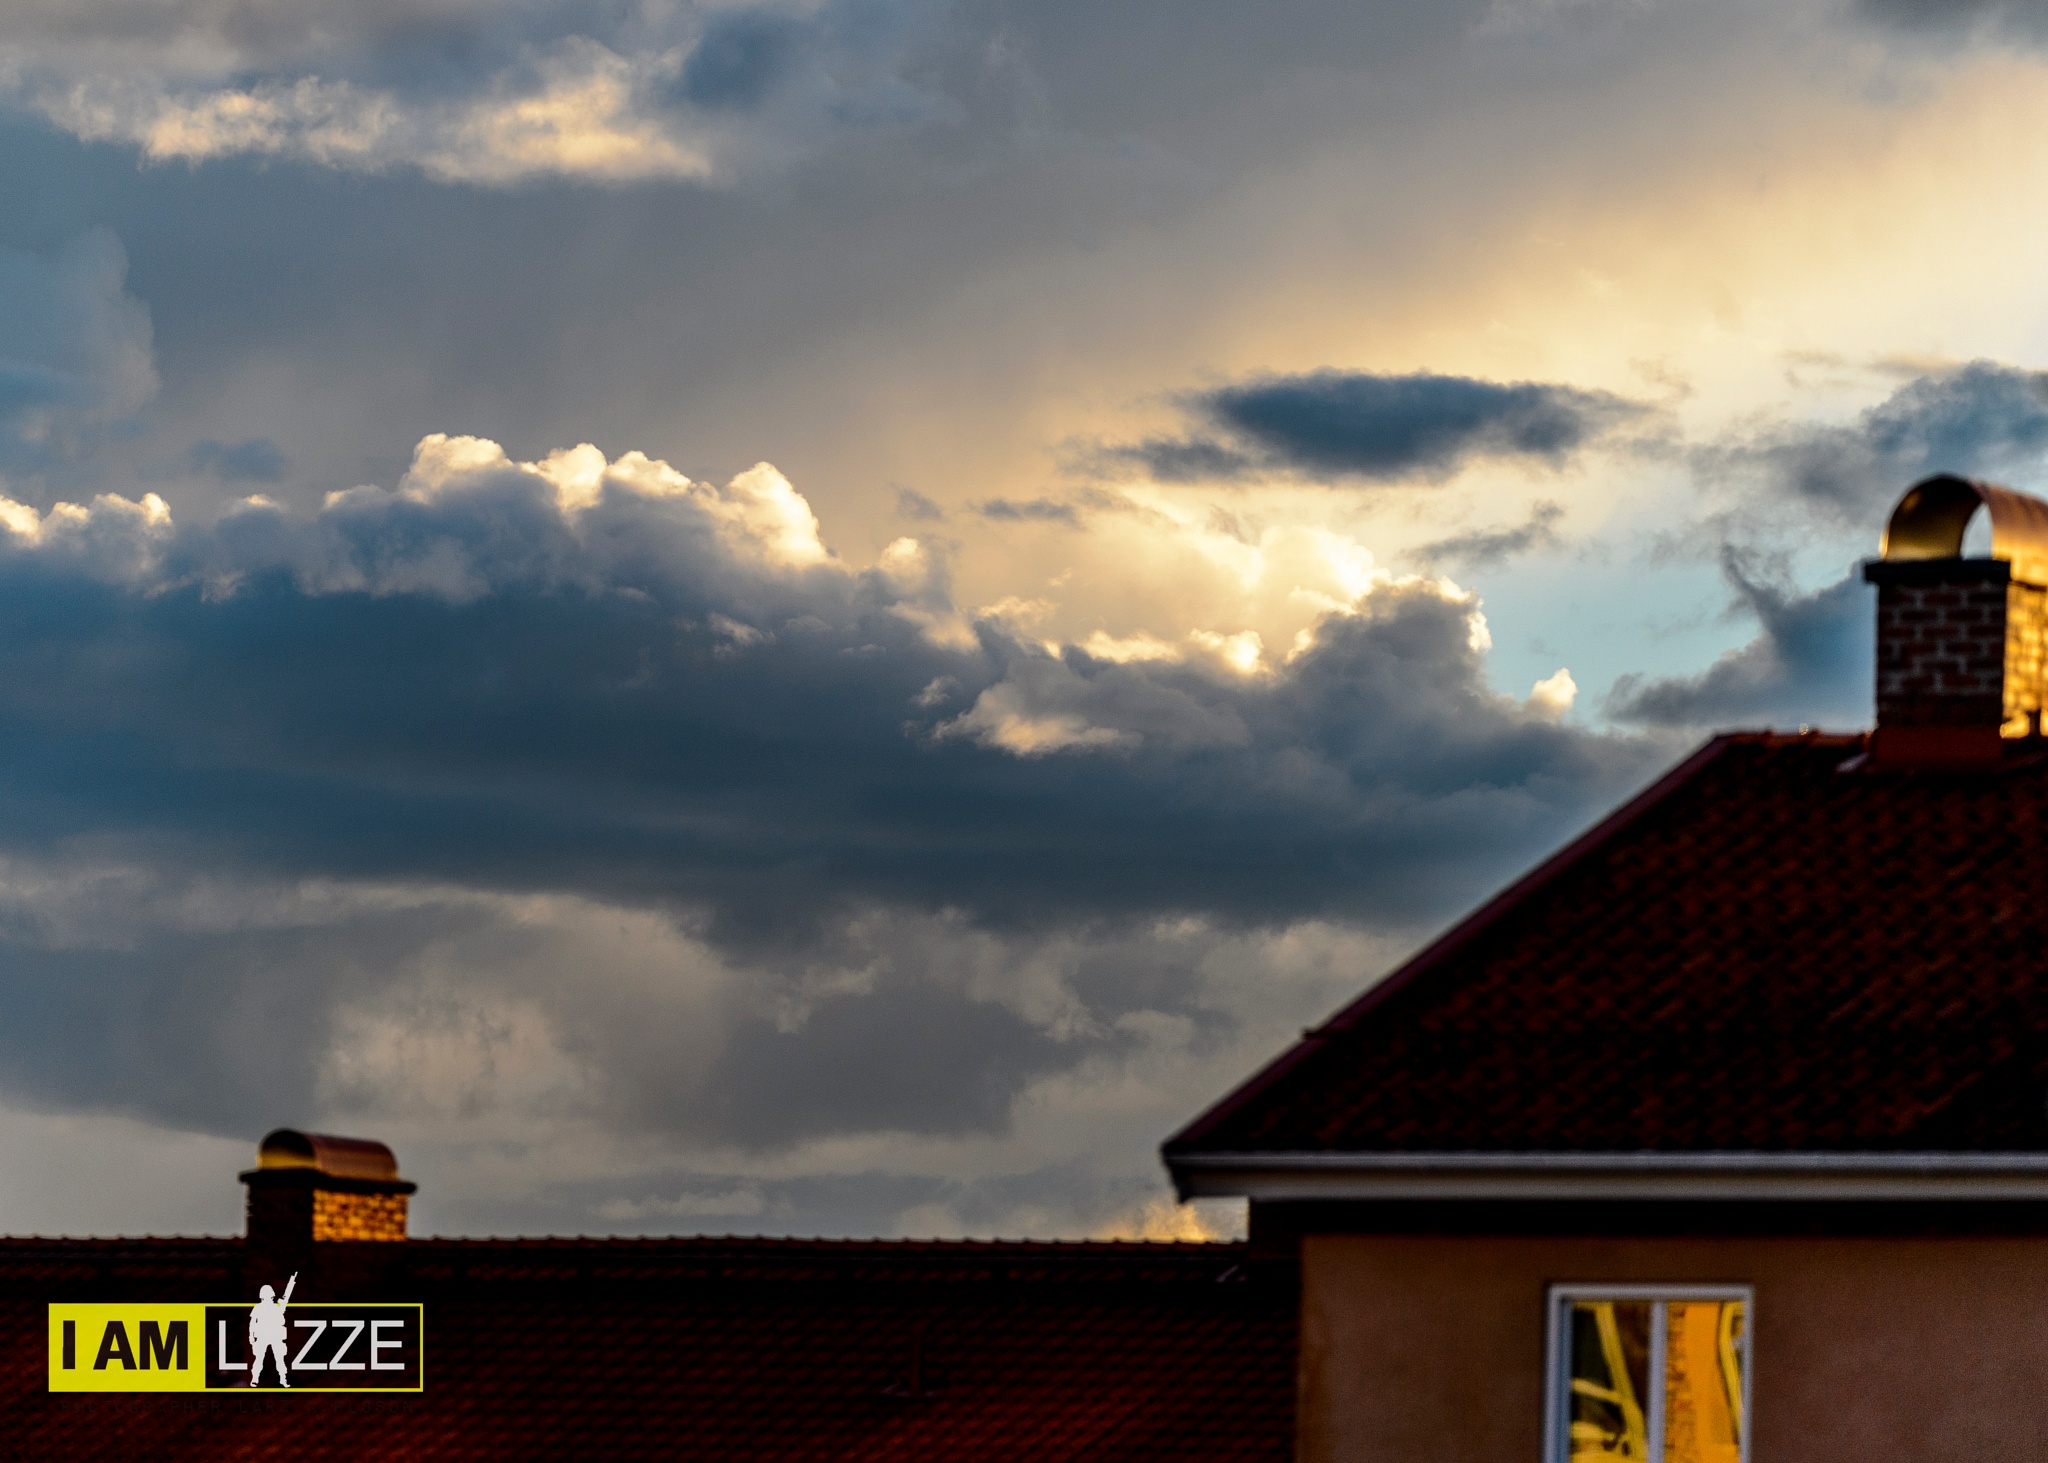 Over the rooftop by IAMLAZZE